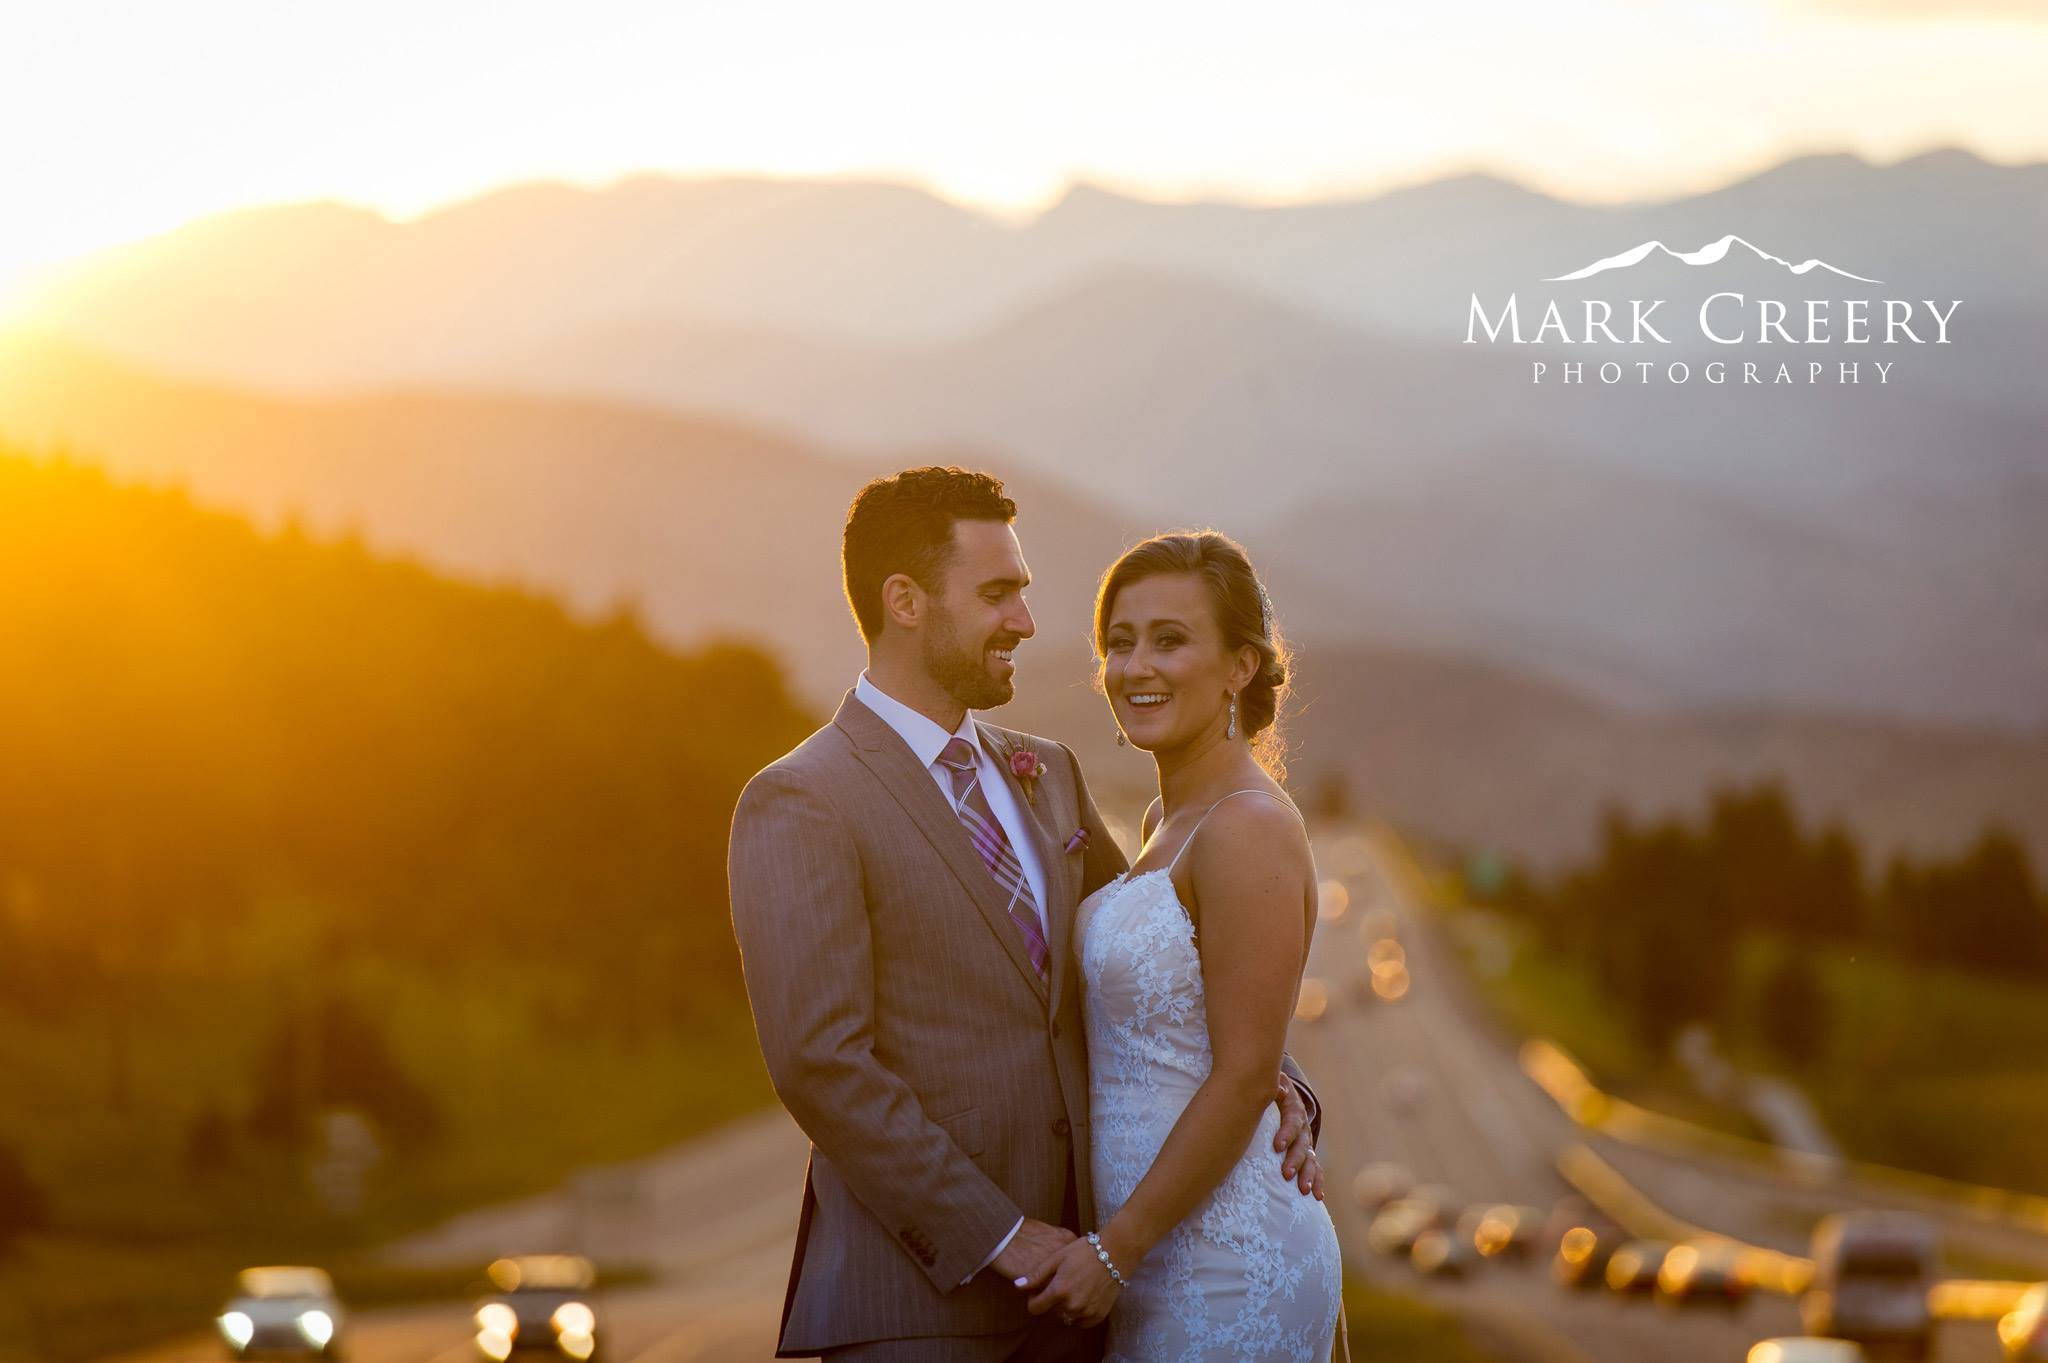 Mark Creeky Photography